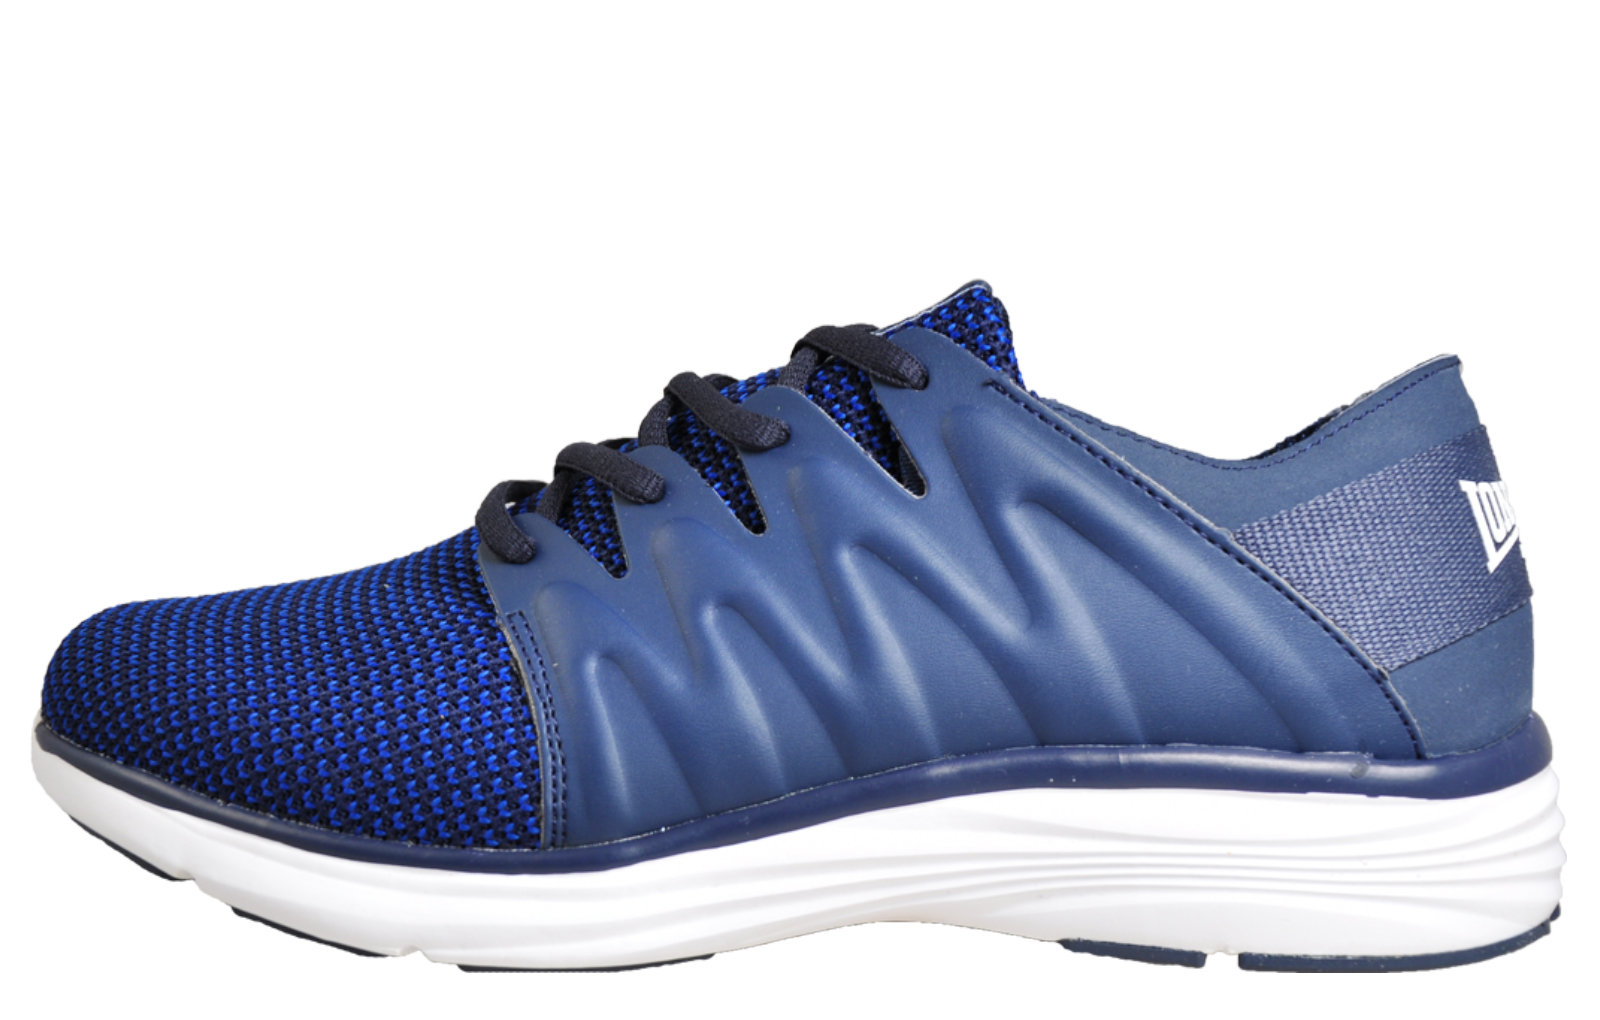 8ed7c79d17d0 Cheap Running Shoes | Men's Running Trainers Sale | Express Trainers